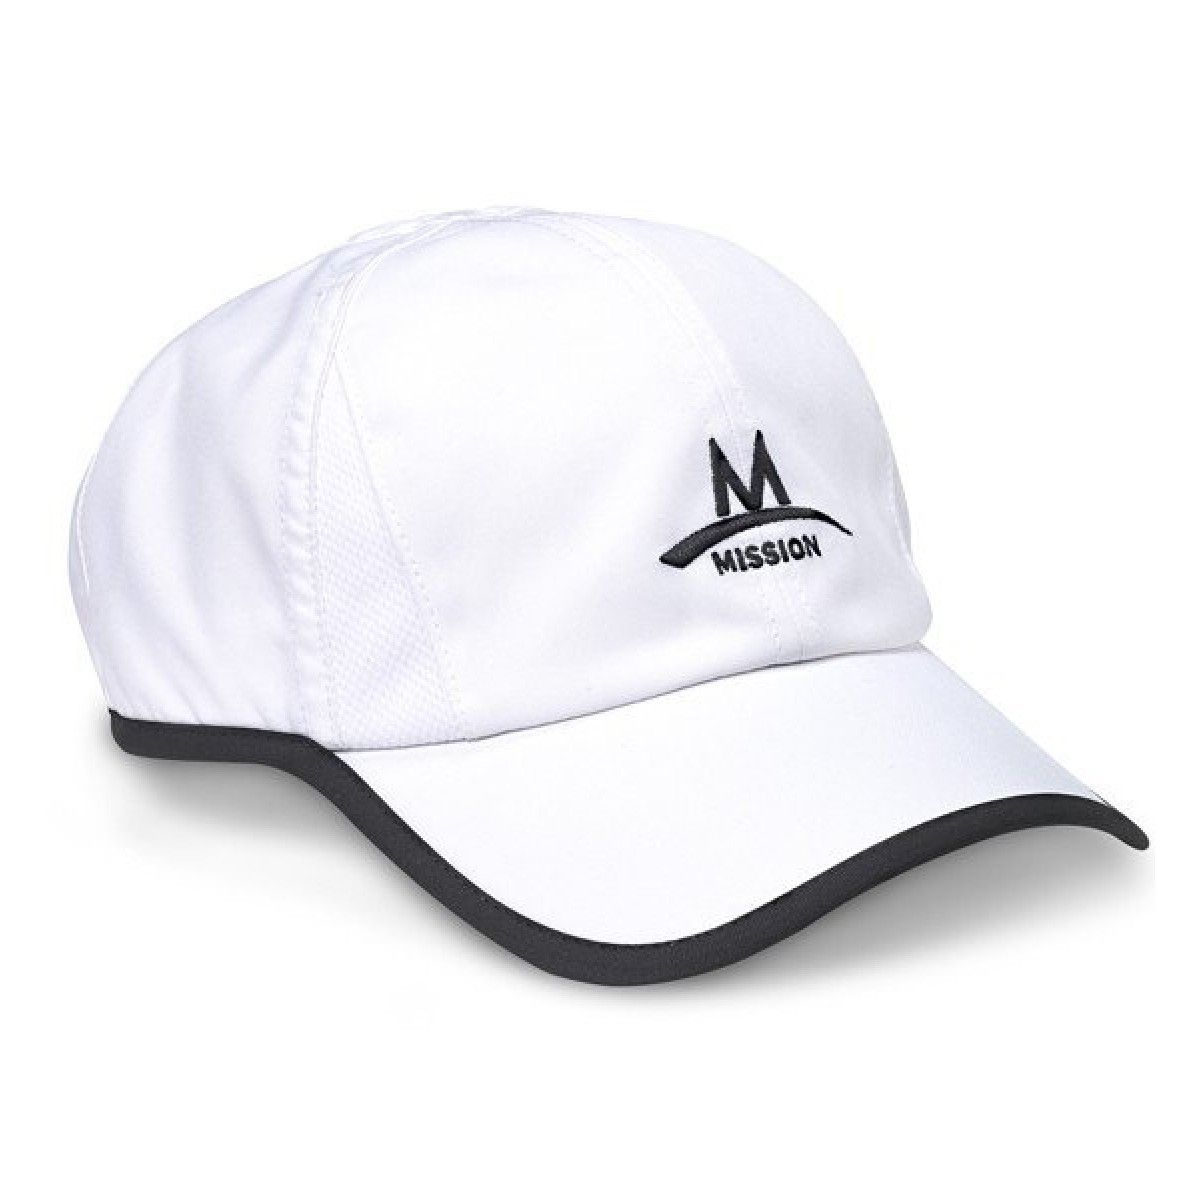 Mission Enduracool Lifestyle Hat From Golfskipin Hats Golf